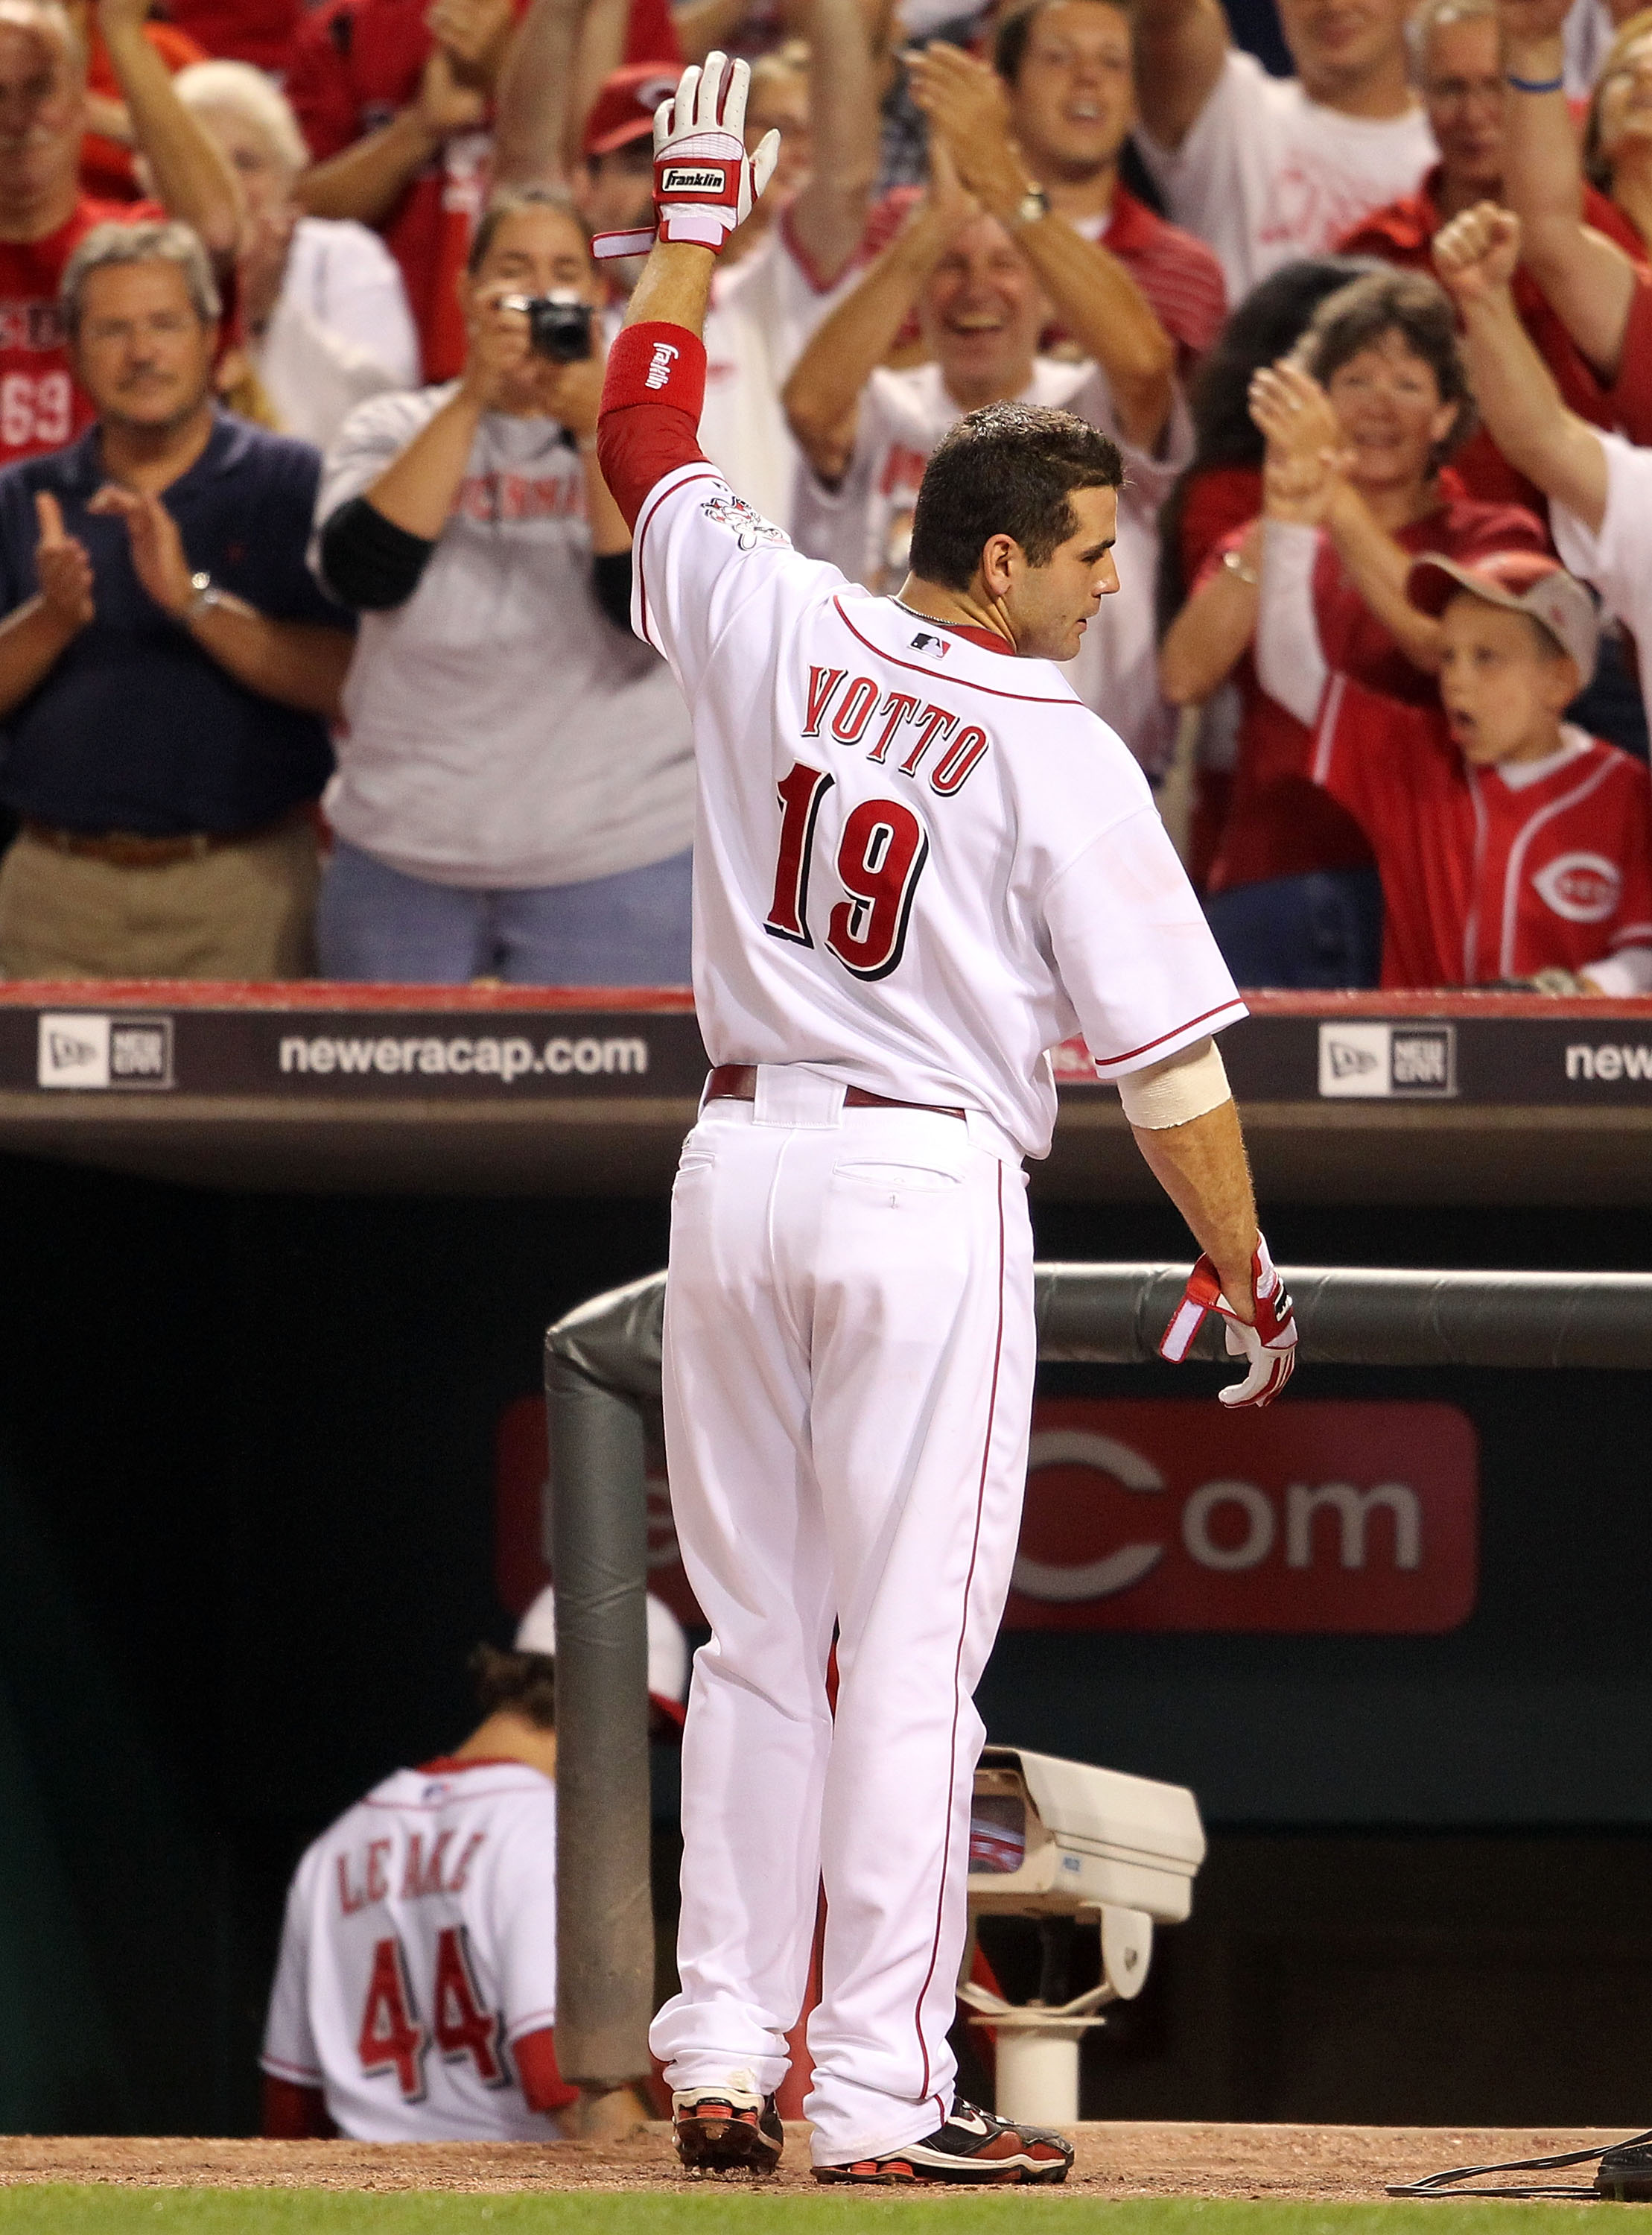 CINCINNATI - SEPTEMBER 11:  Joey Votto #19 of the Cincinnati Reds waves to the crowd during the game against the Pittsburg Pirates at Great American Ball Park on September 11, 2010 in Cincinnati, Ohio.  (Photo by Andy Lyons/Getty Images)